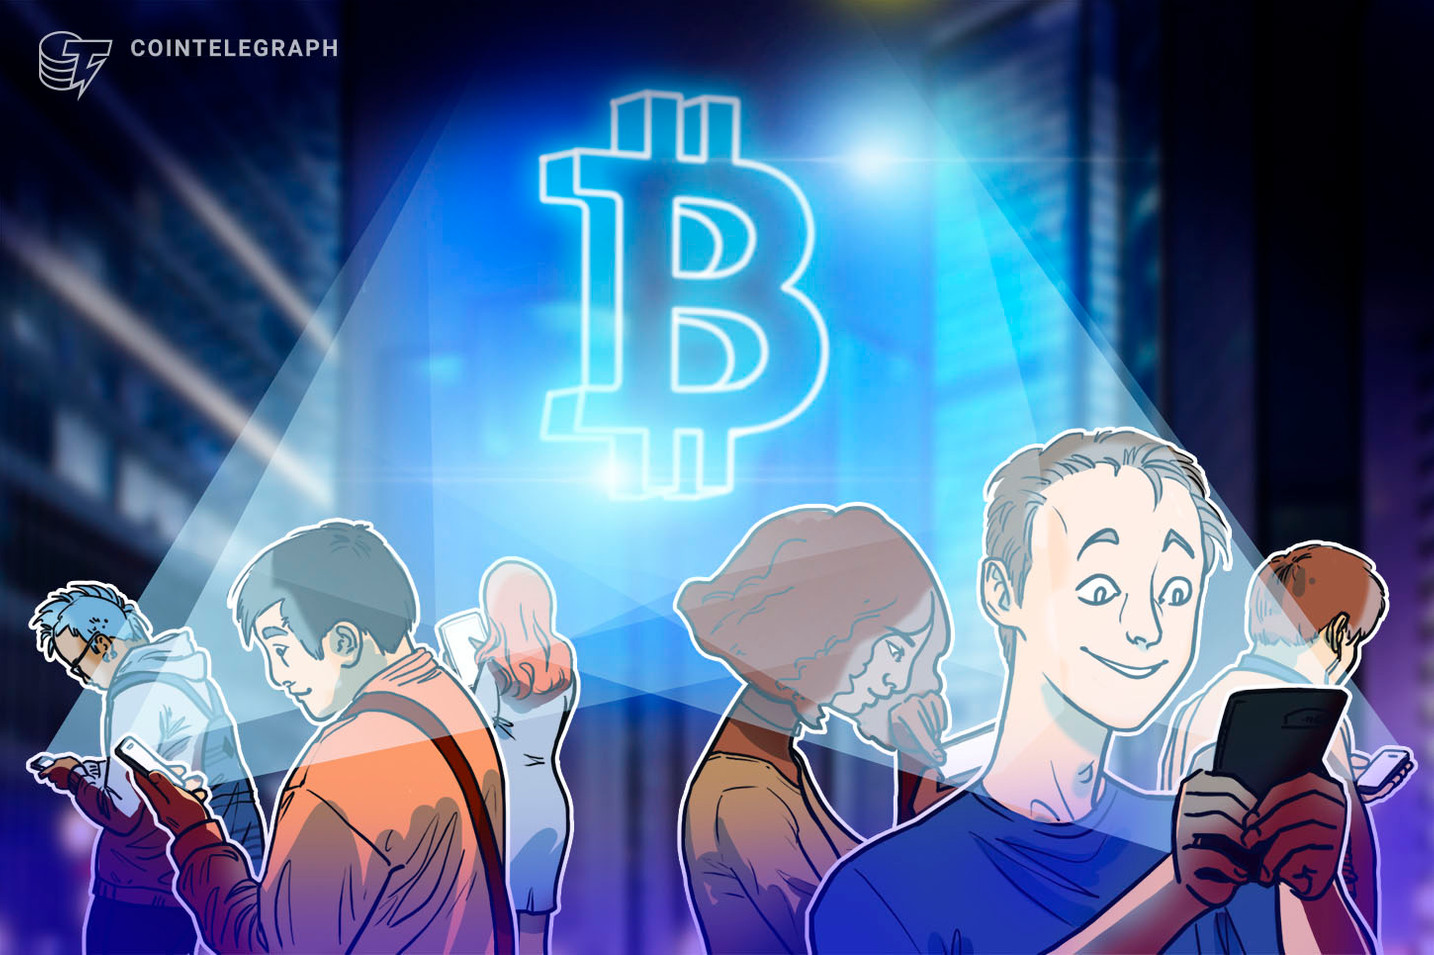 Twitter to allow users to add BTC and ETH addresses to profiles, per leaked screenshots